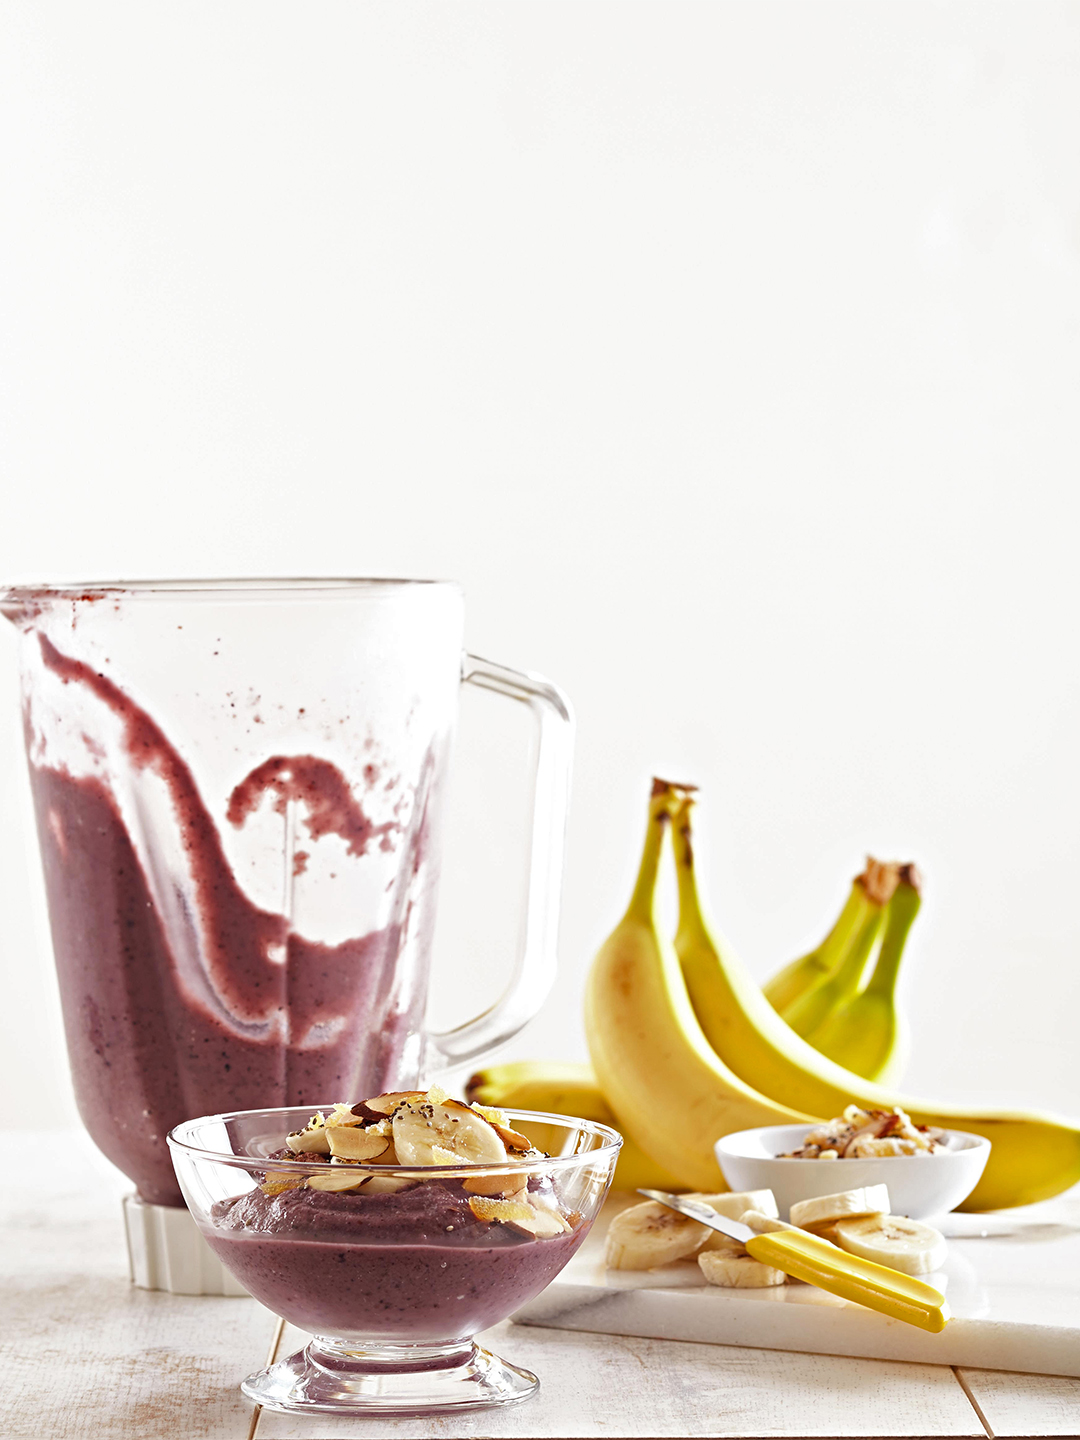 Berry-Banana Smoothie Bowls and blender